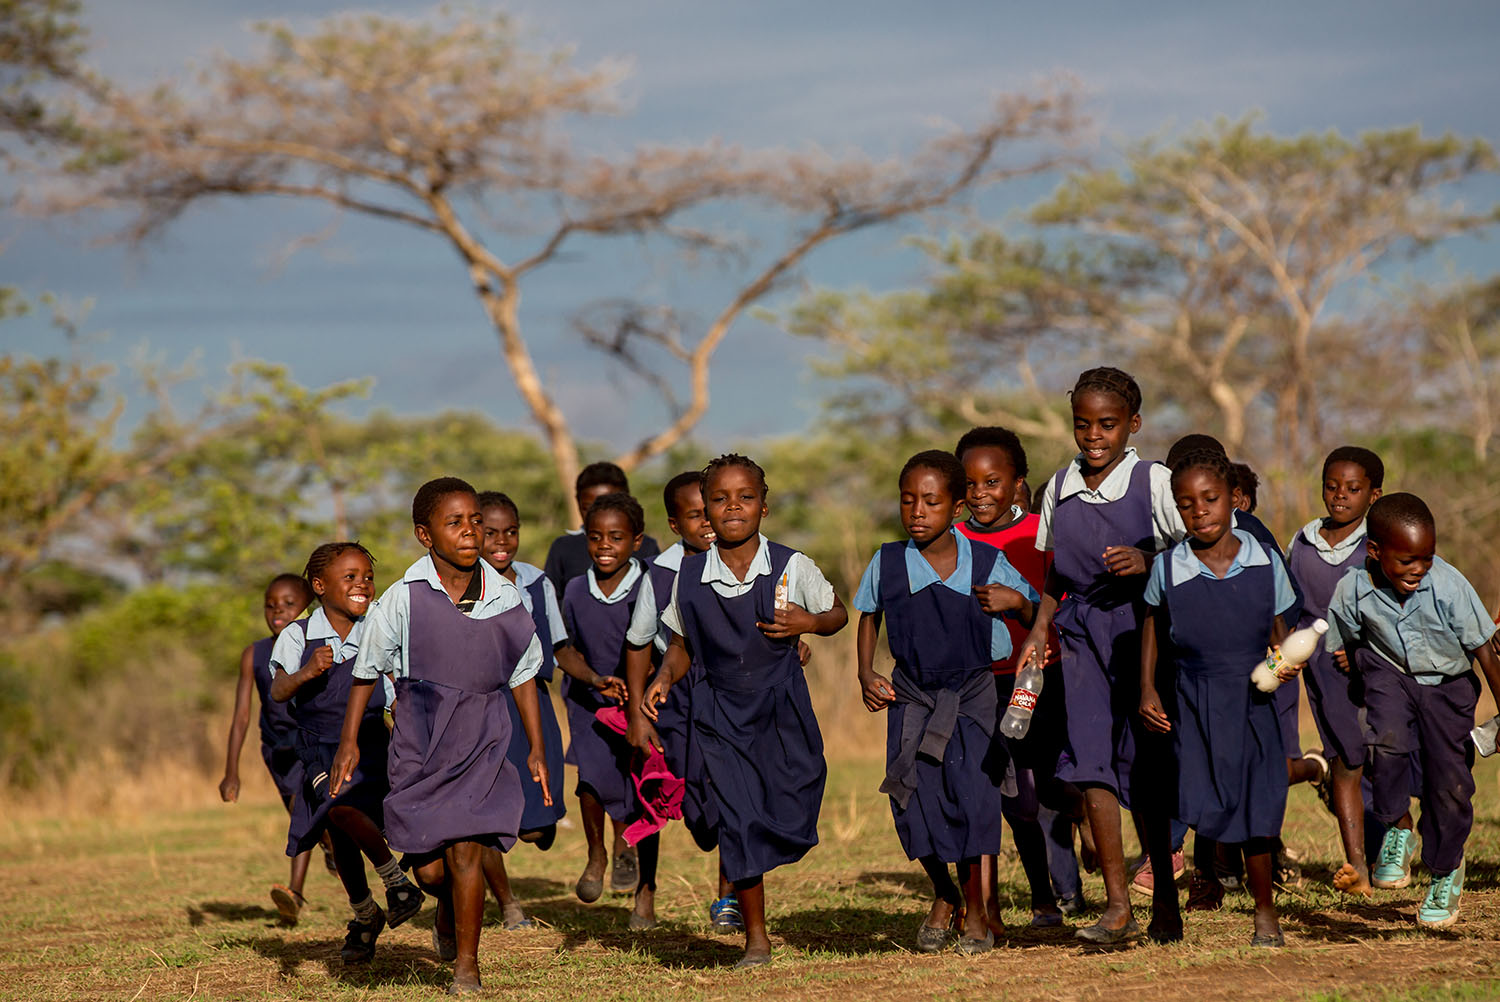 UNICEF Zambia supports the government to provide equitable access to quality, inclusive and gender-sensitive education.